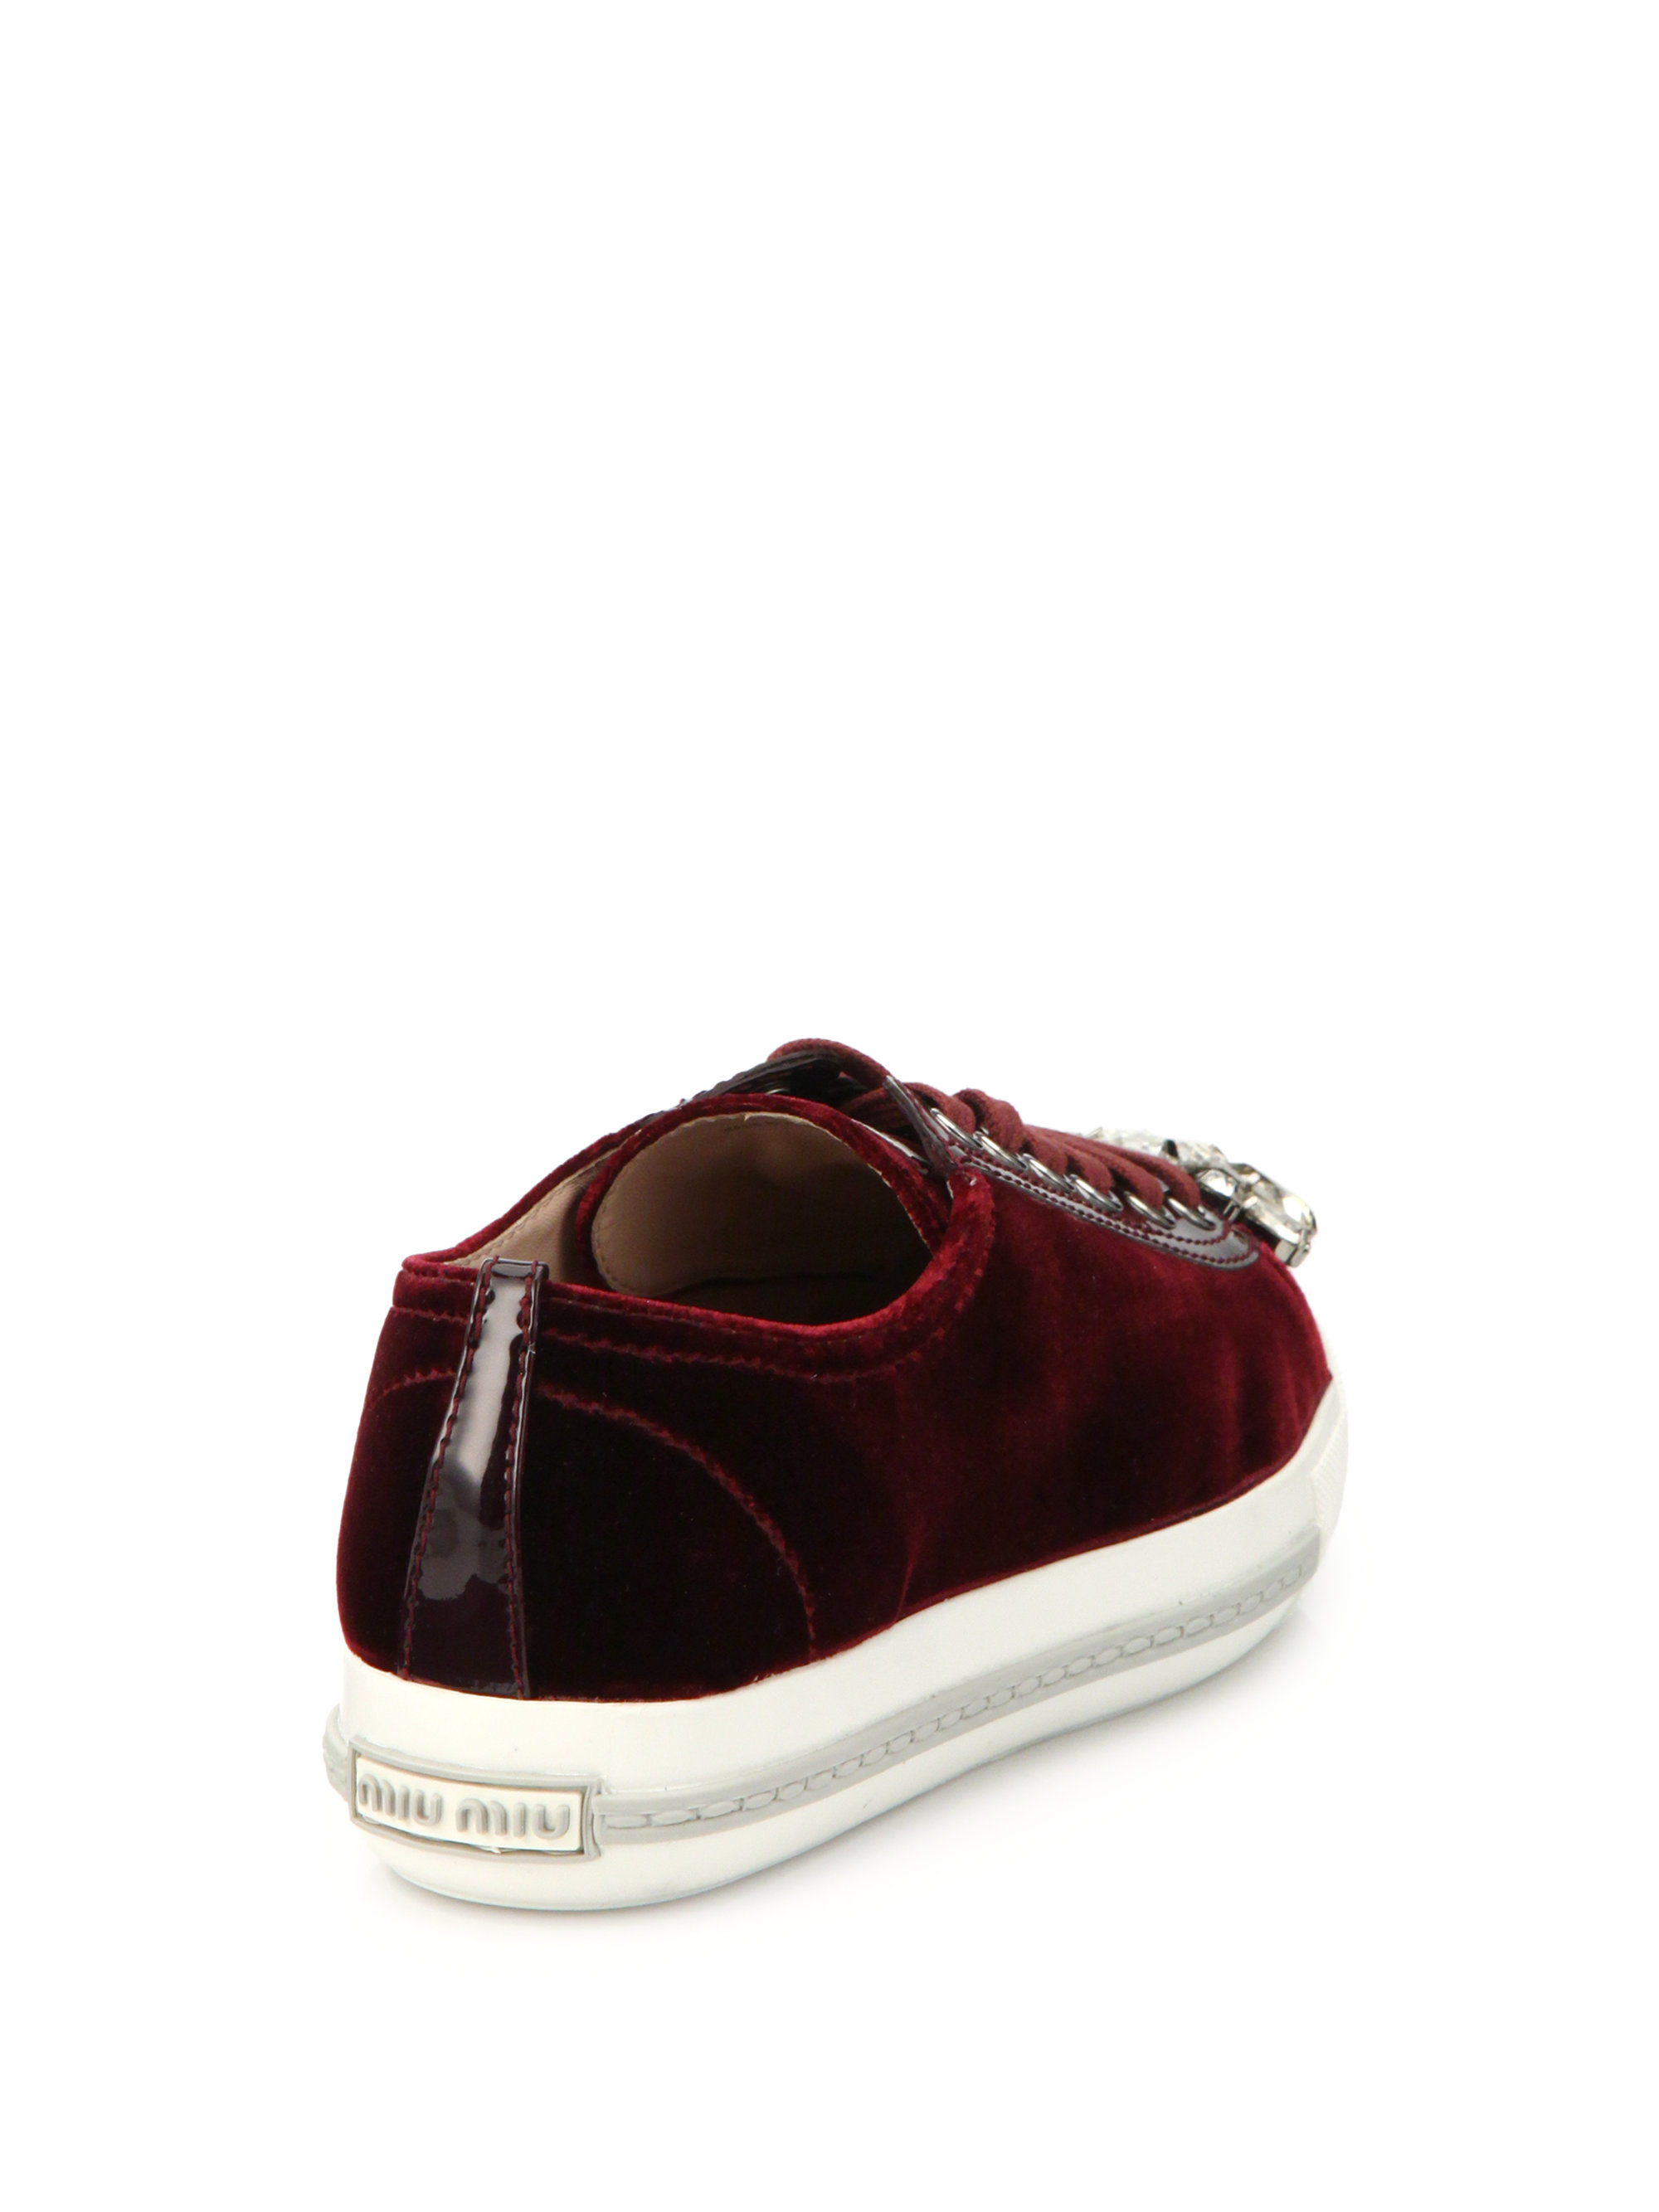 sale clearance store Miu Miu Velvet Jewel-Embellished Sneakers clearance official MGxcbQ